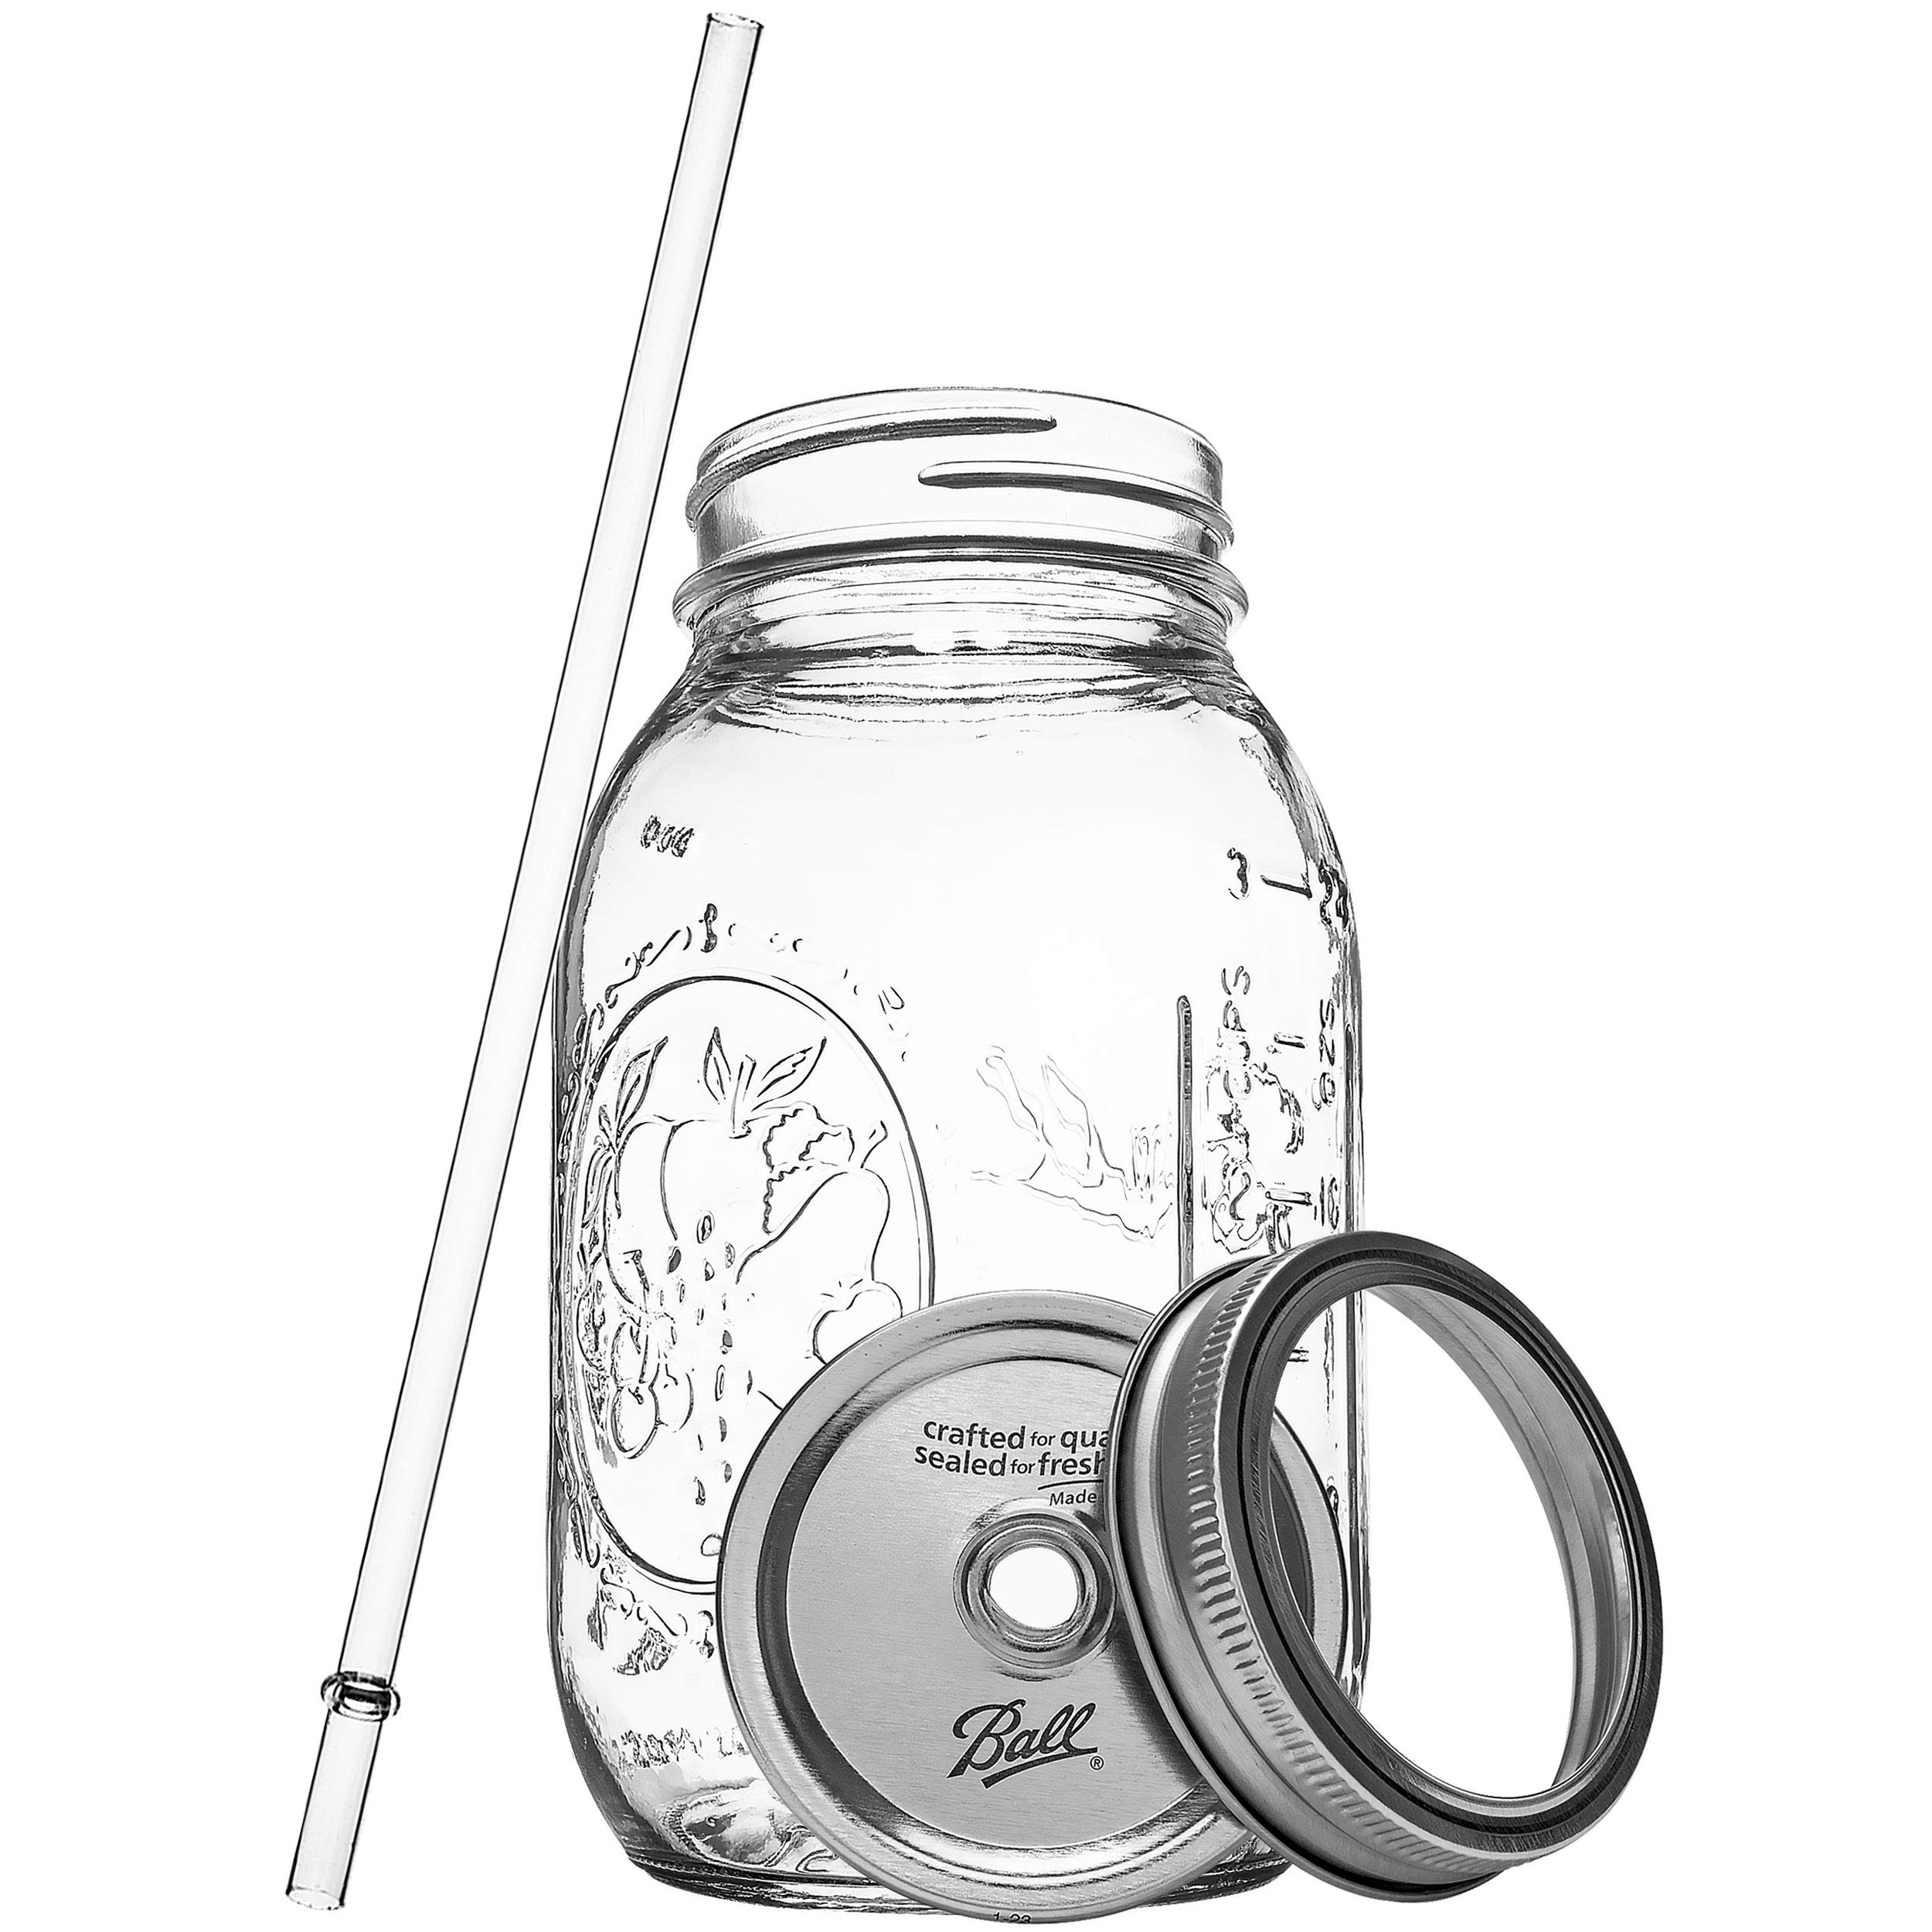 Ball RNWG-SIP-32OZ-2PK Guzzler Set a 32oz Mason Jar + Sippin' Lid + Acrylic Straw Reusable Novelty Cocktail Glasses Shabby Chic, 2 Pack Clear by Ball (Image #3)